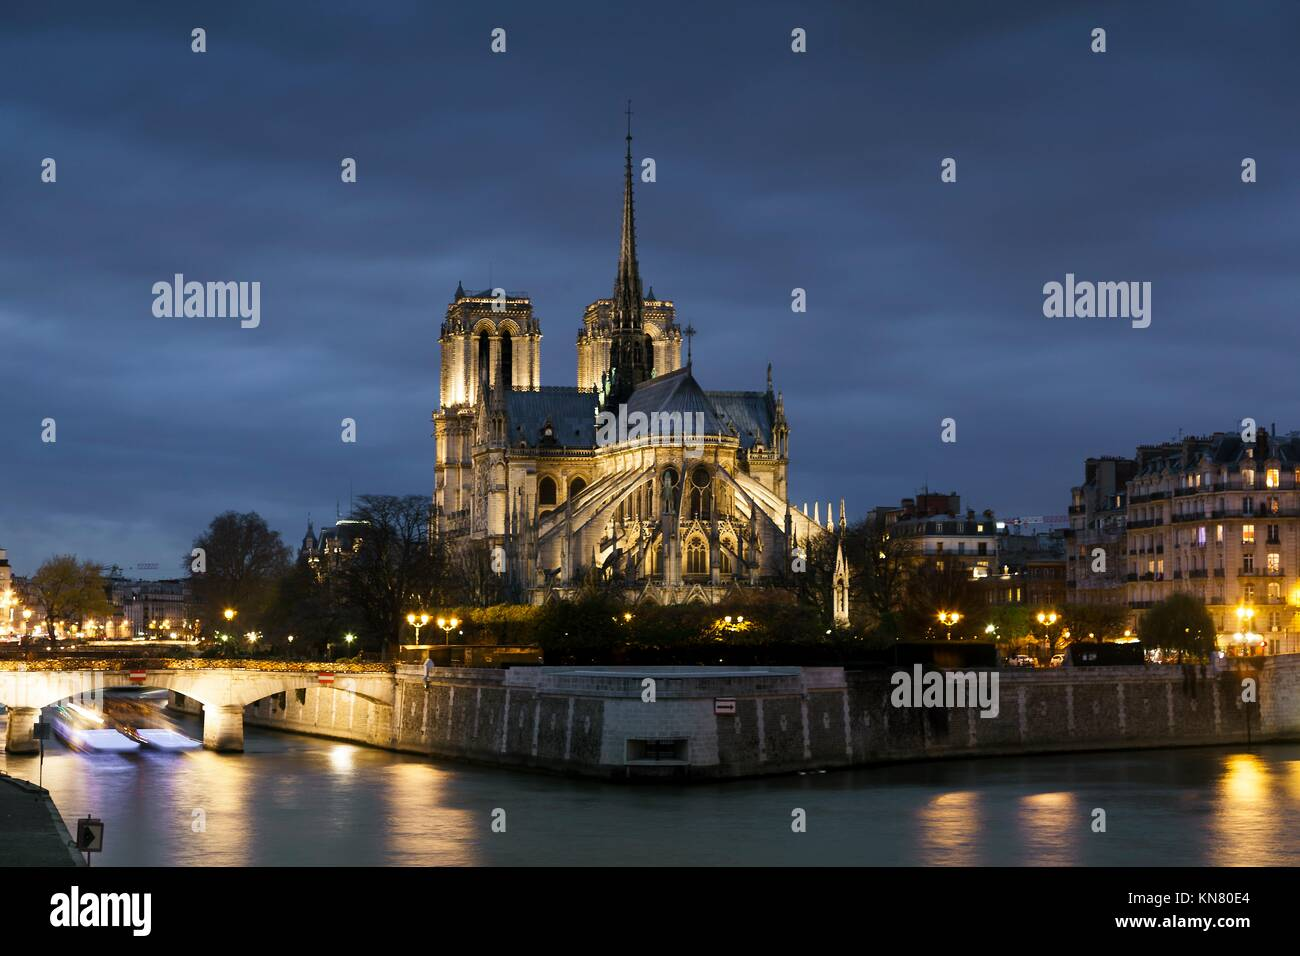 La Cathédrale Notre Dame, Paris, Ile de France, France. Photo Stock